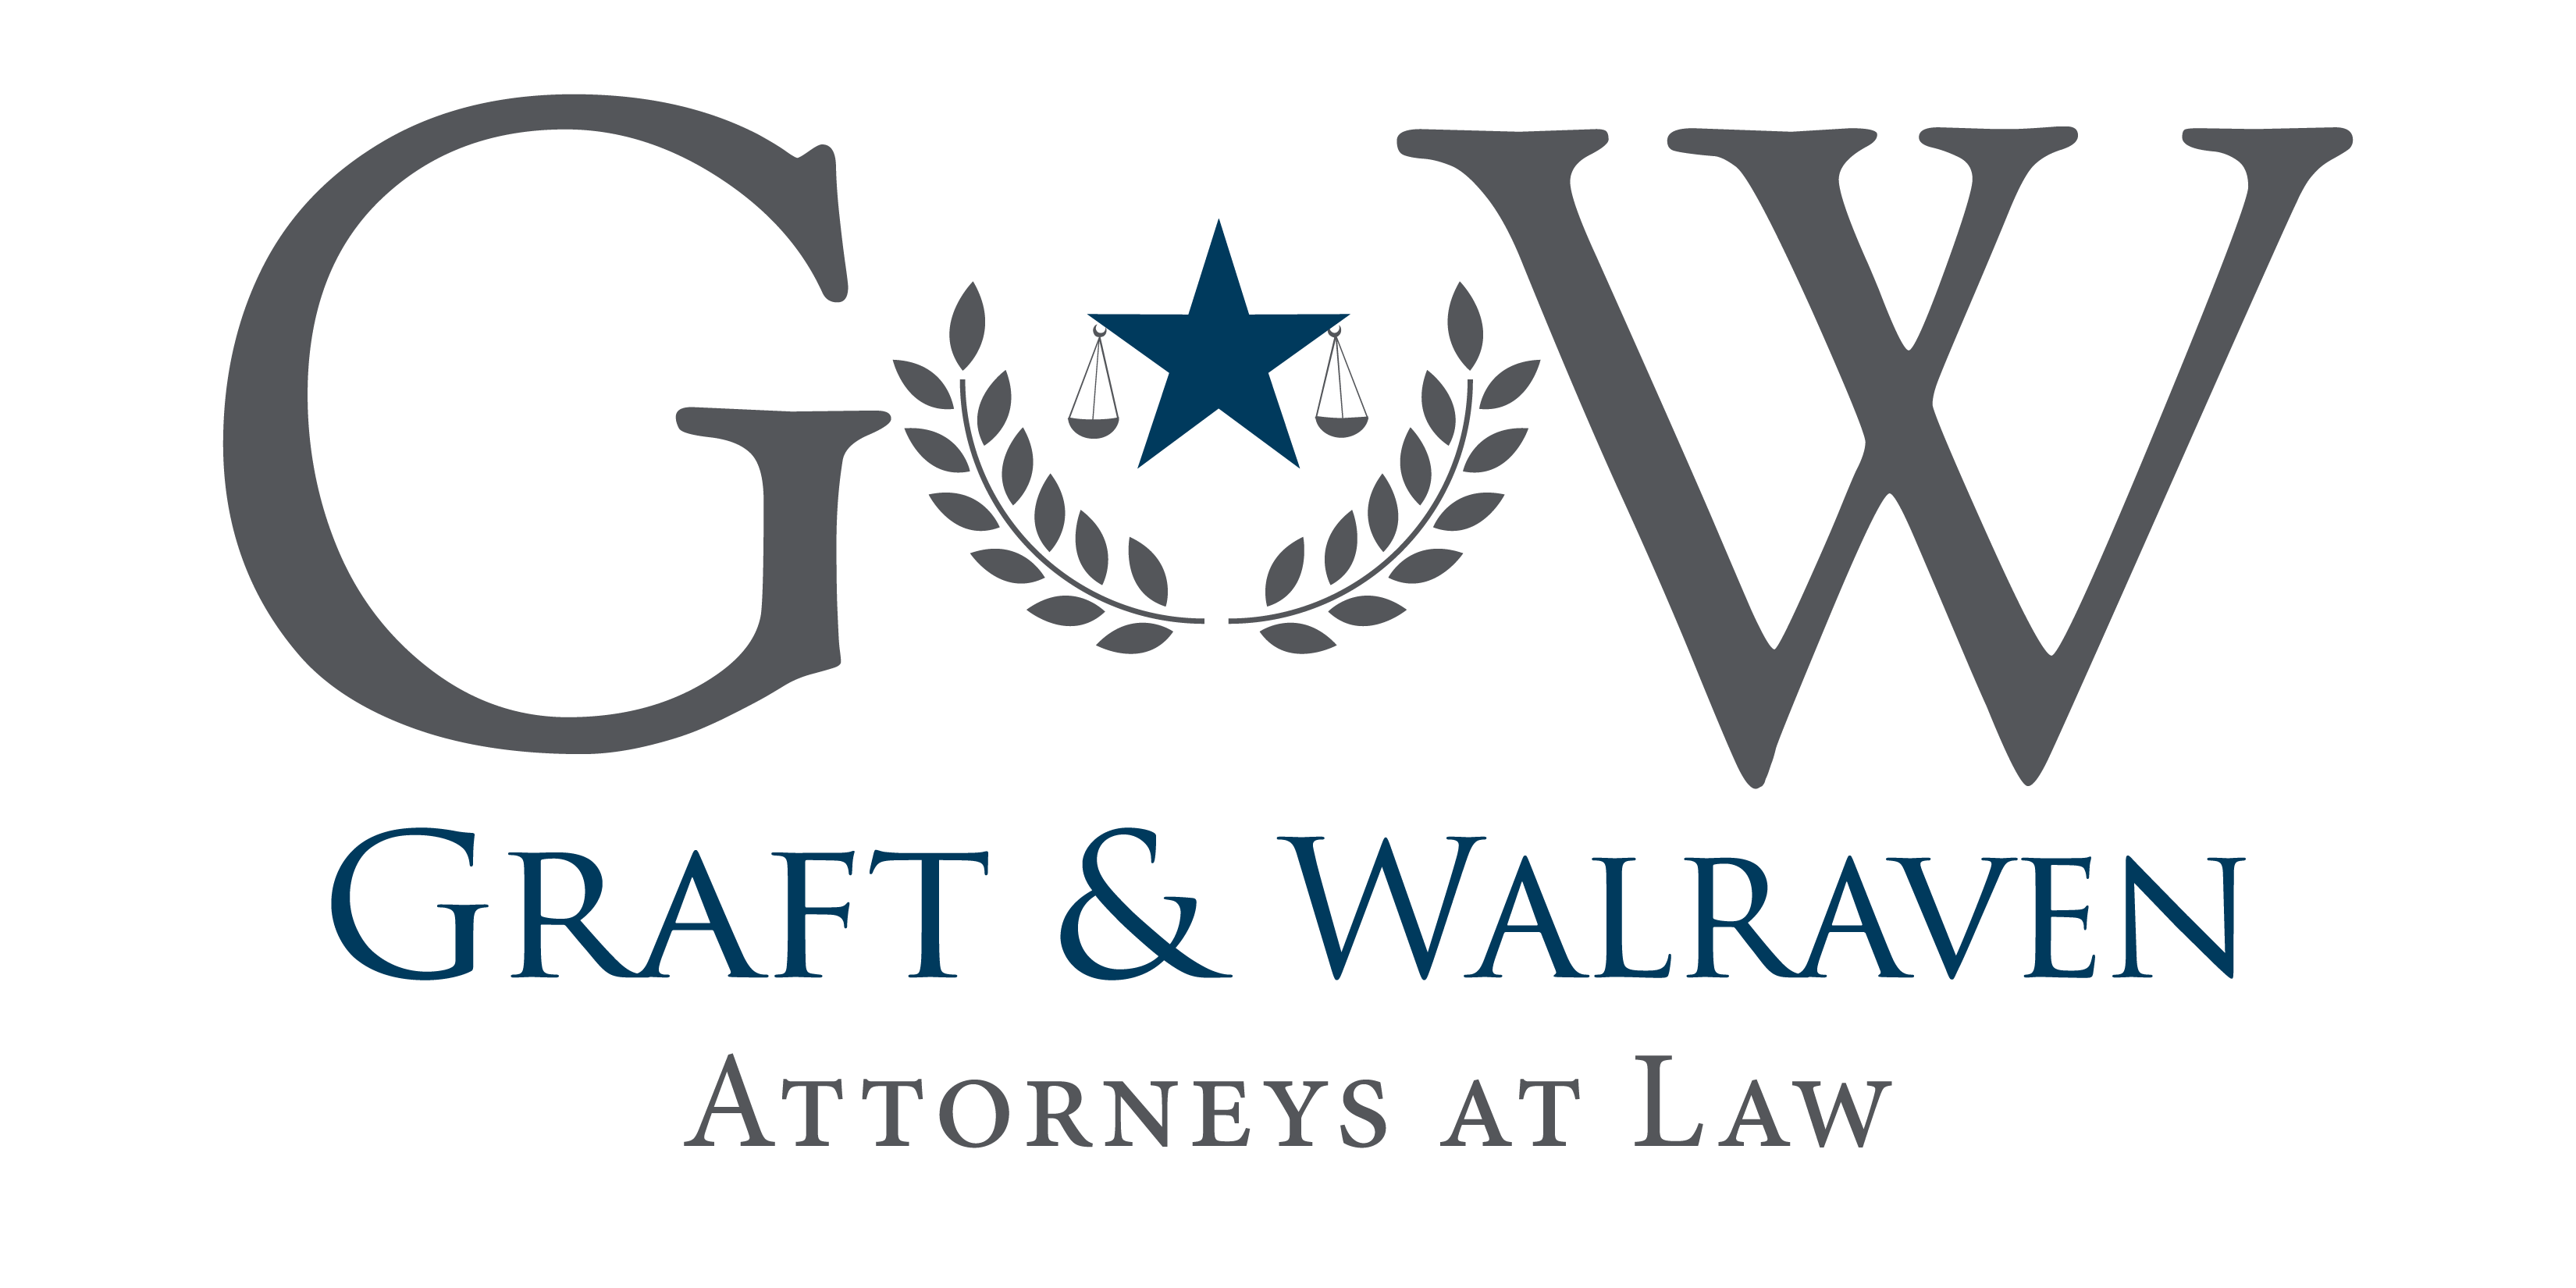 Graft and Walraven are the Oklahoma Probate lawyers you can trust.